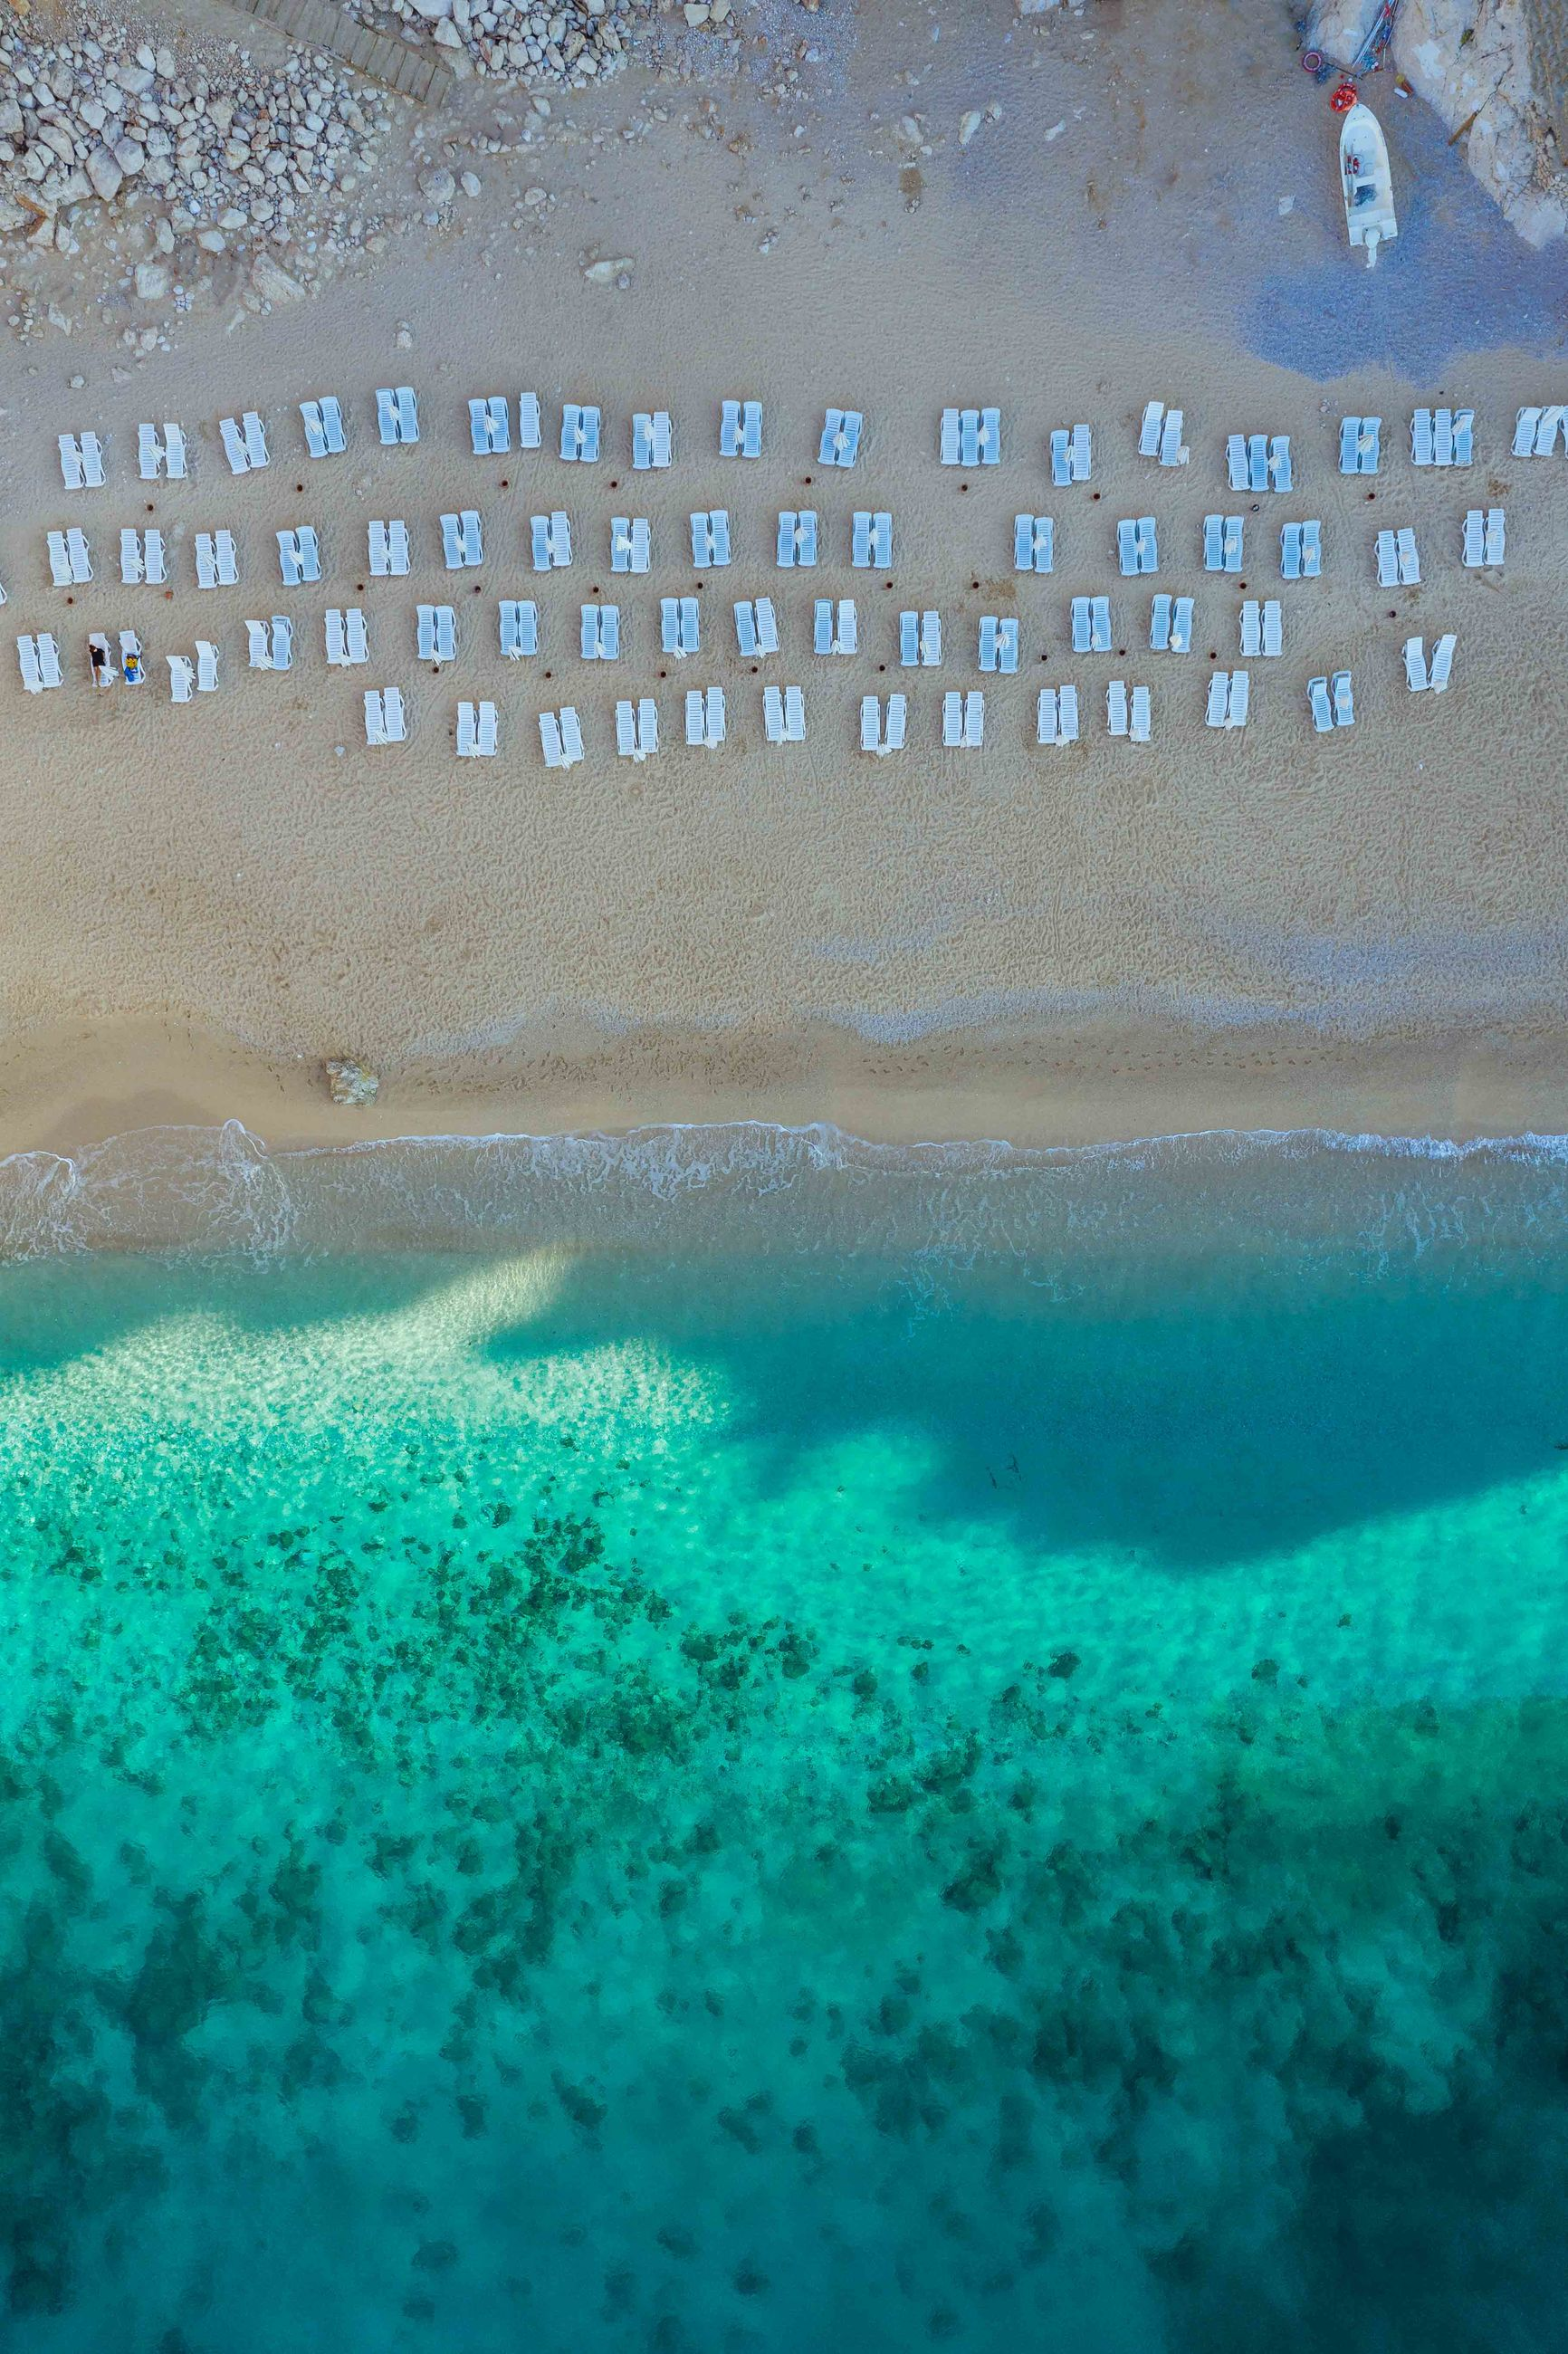 water, sea, nature, no people, turquoise colored, transparent, land, outdoors, underwater, day, blue, close-up, beach, beauty in nature, high angle view, pool, swimming, sand, animal wildlife, swimming pool